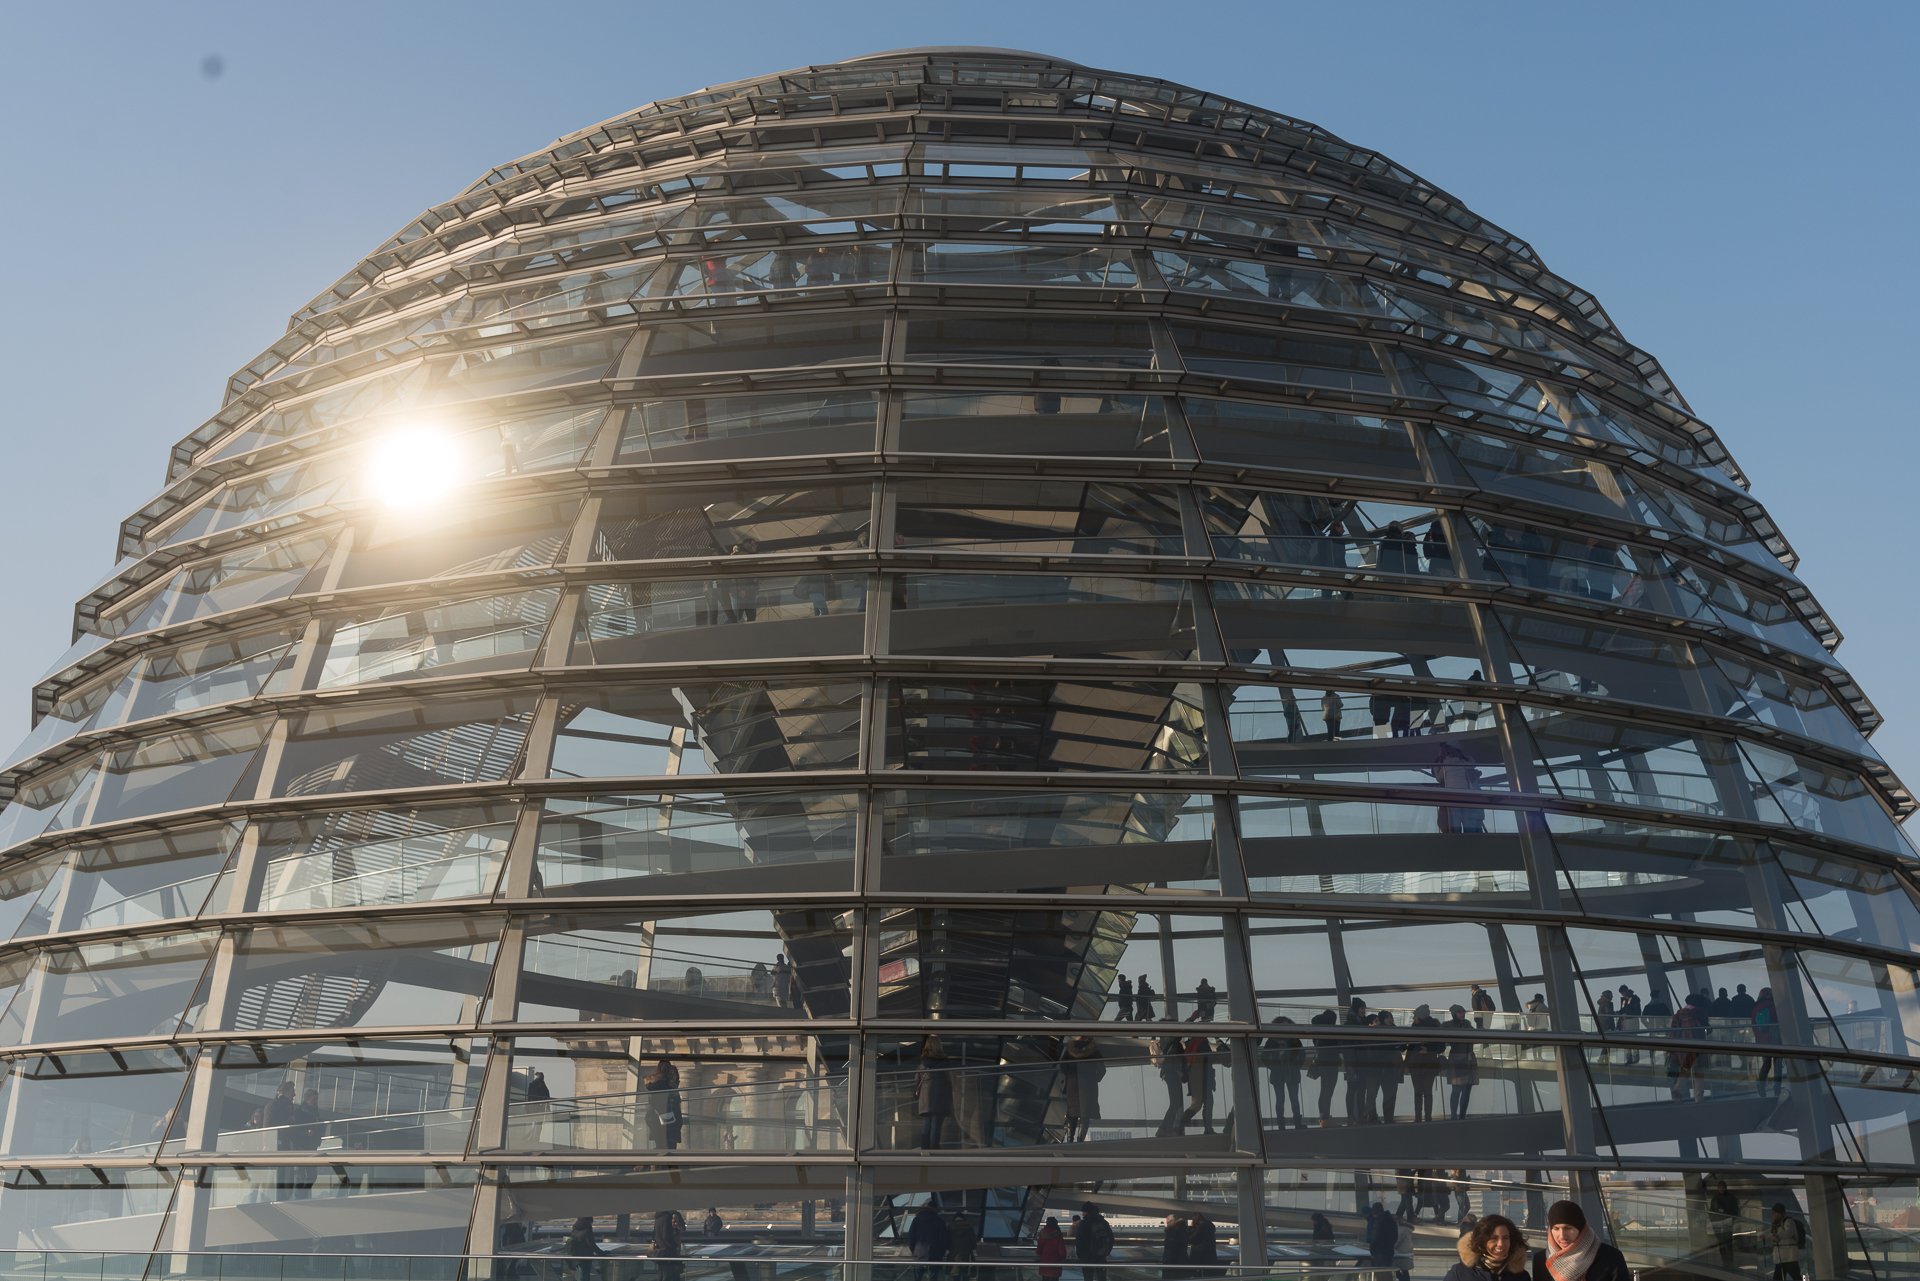 Sun reflecting off the glass dome on top of the German Bundestag in Berlin, Germany